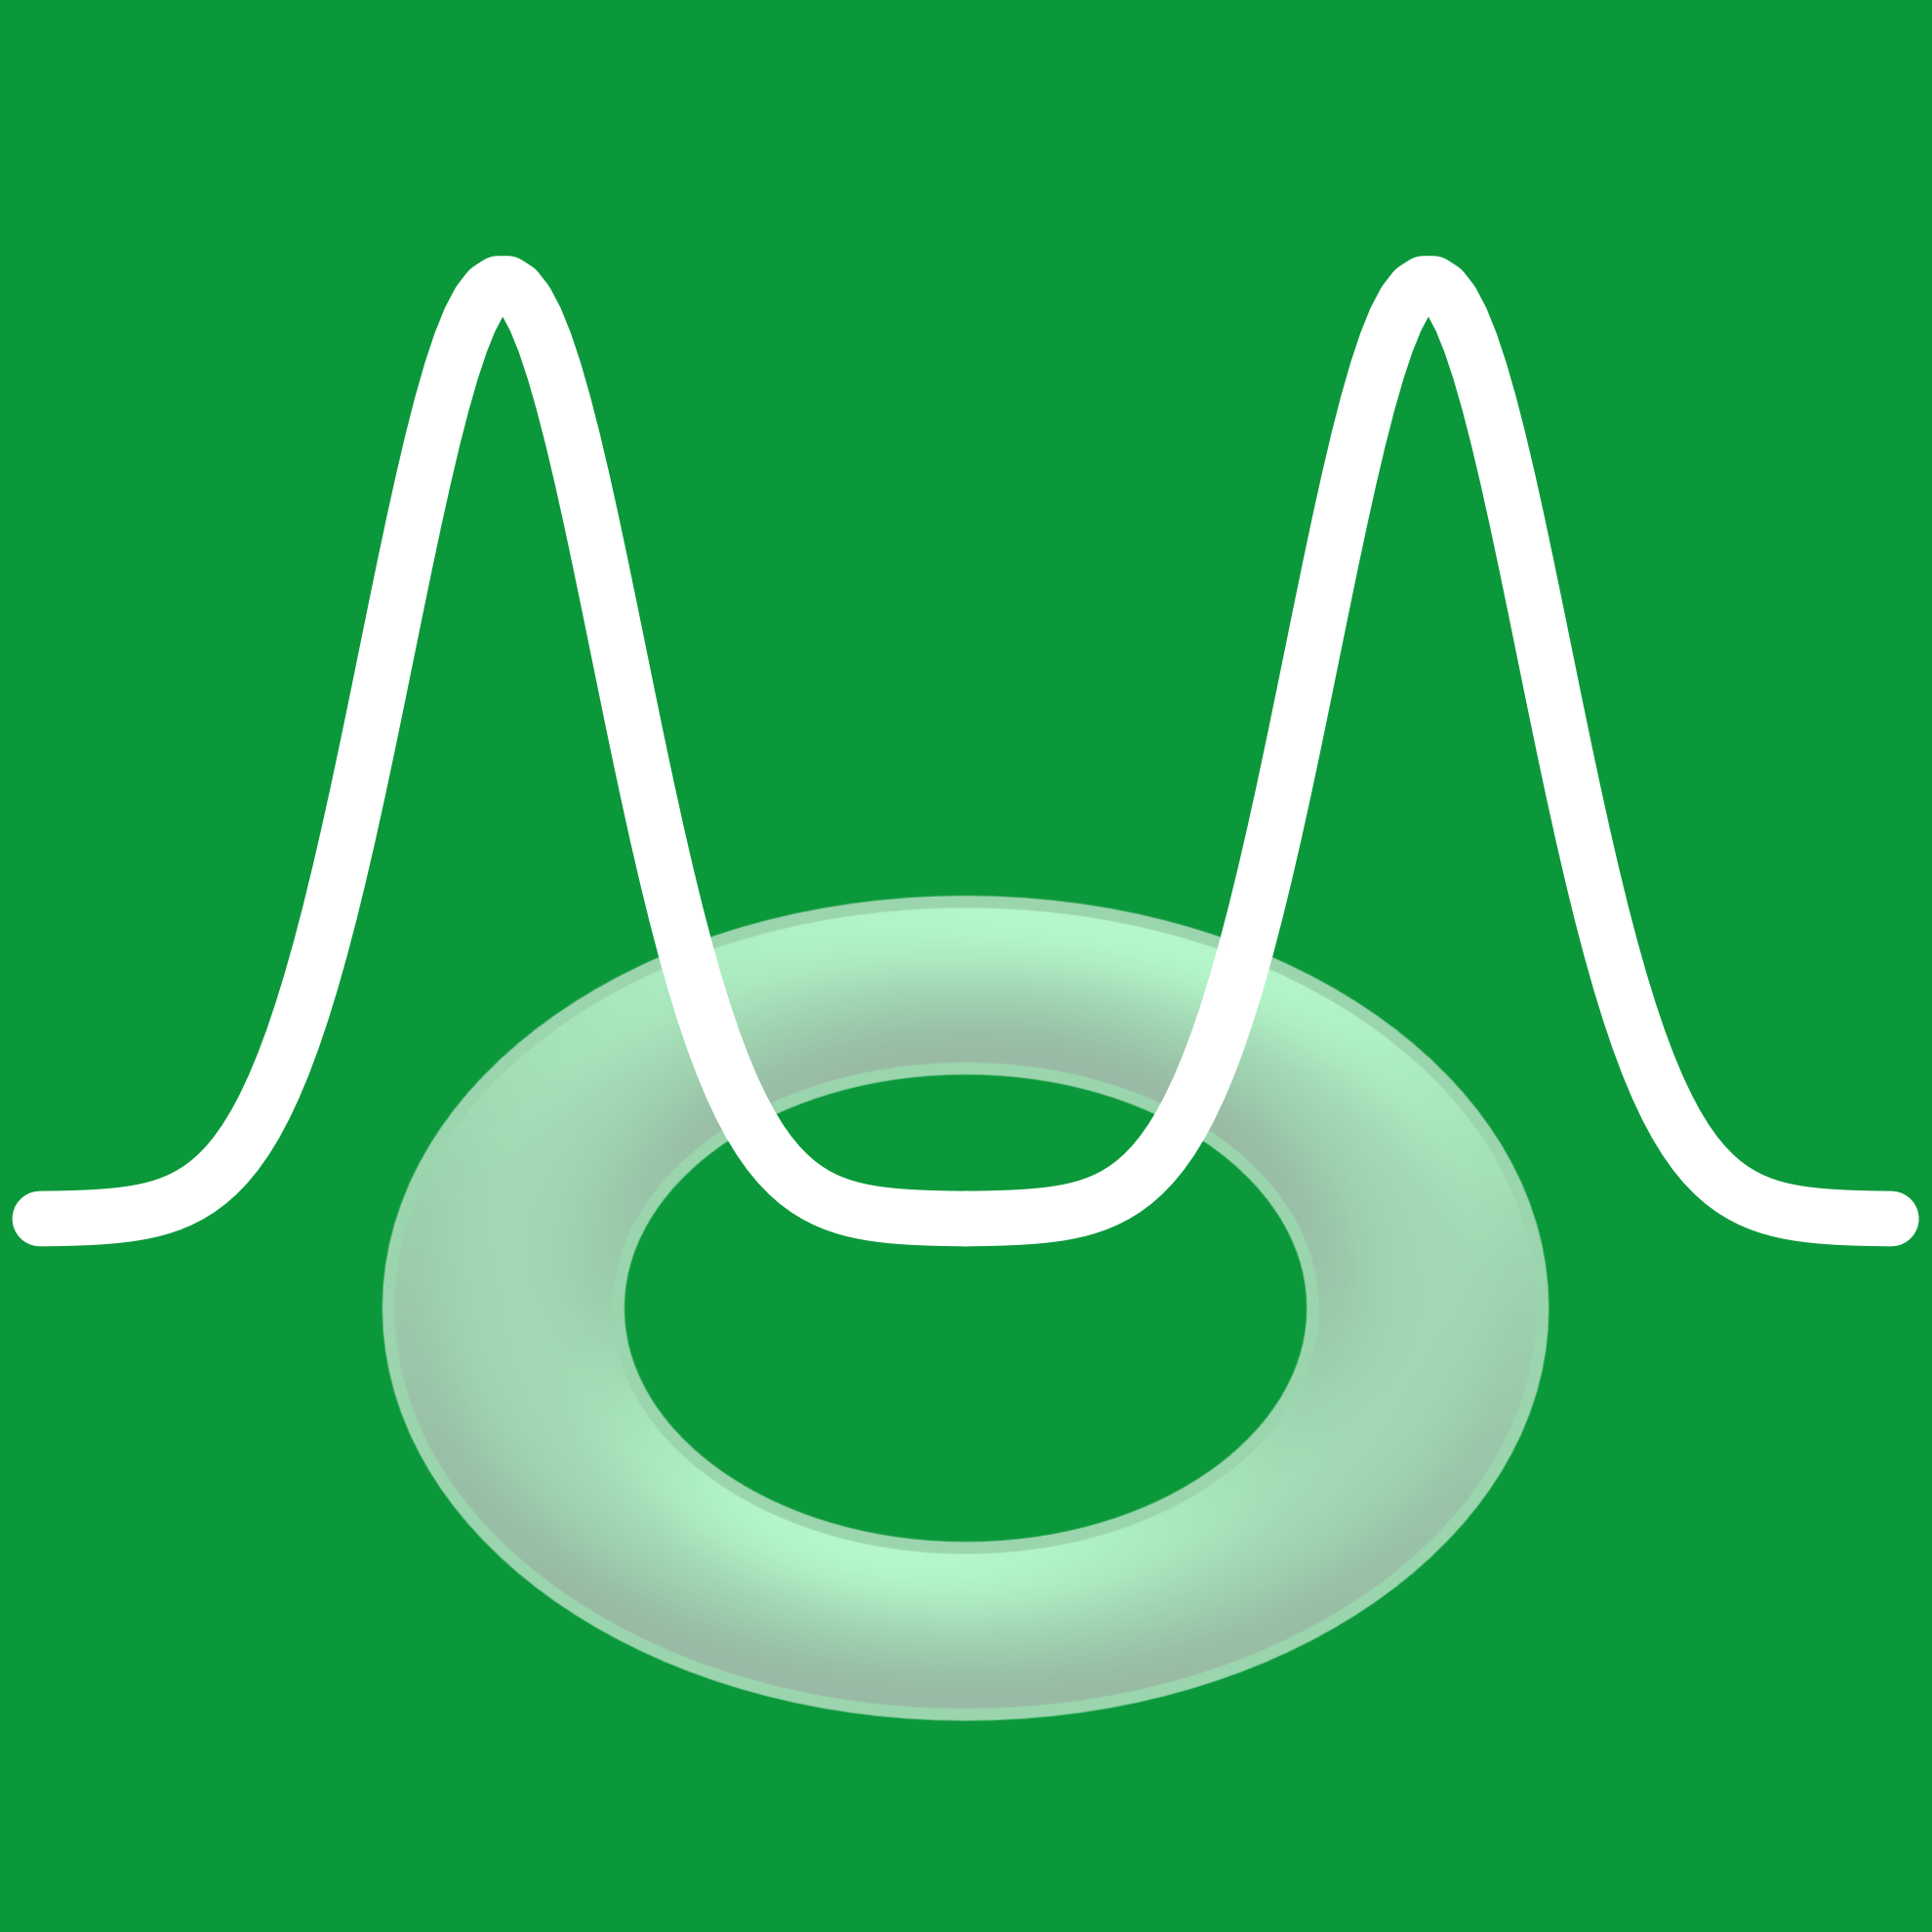 Ring spread function test icon